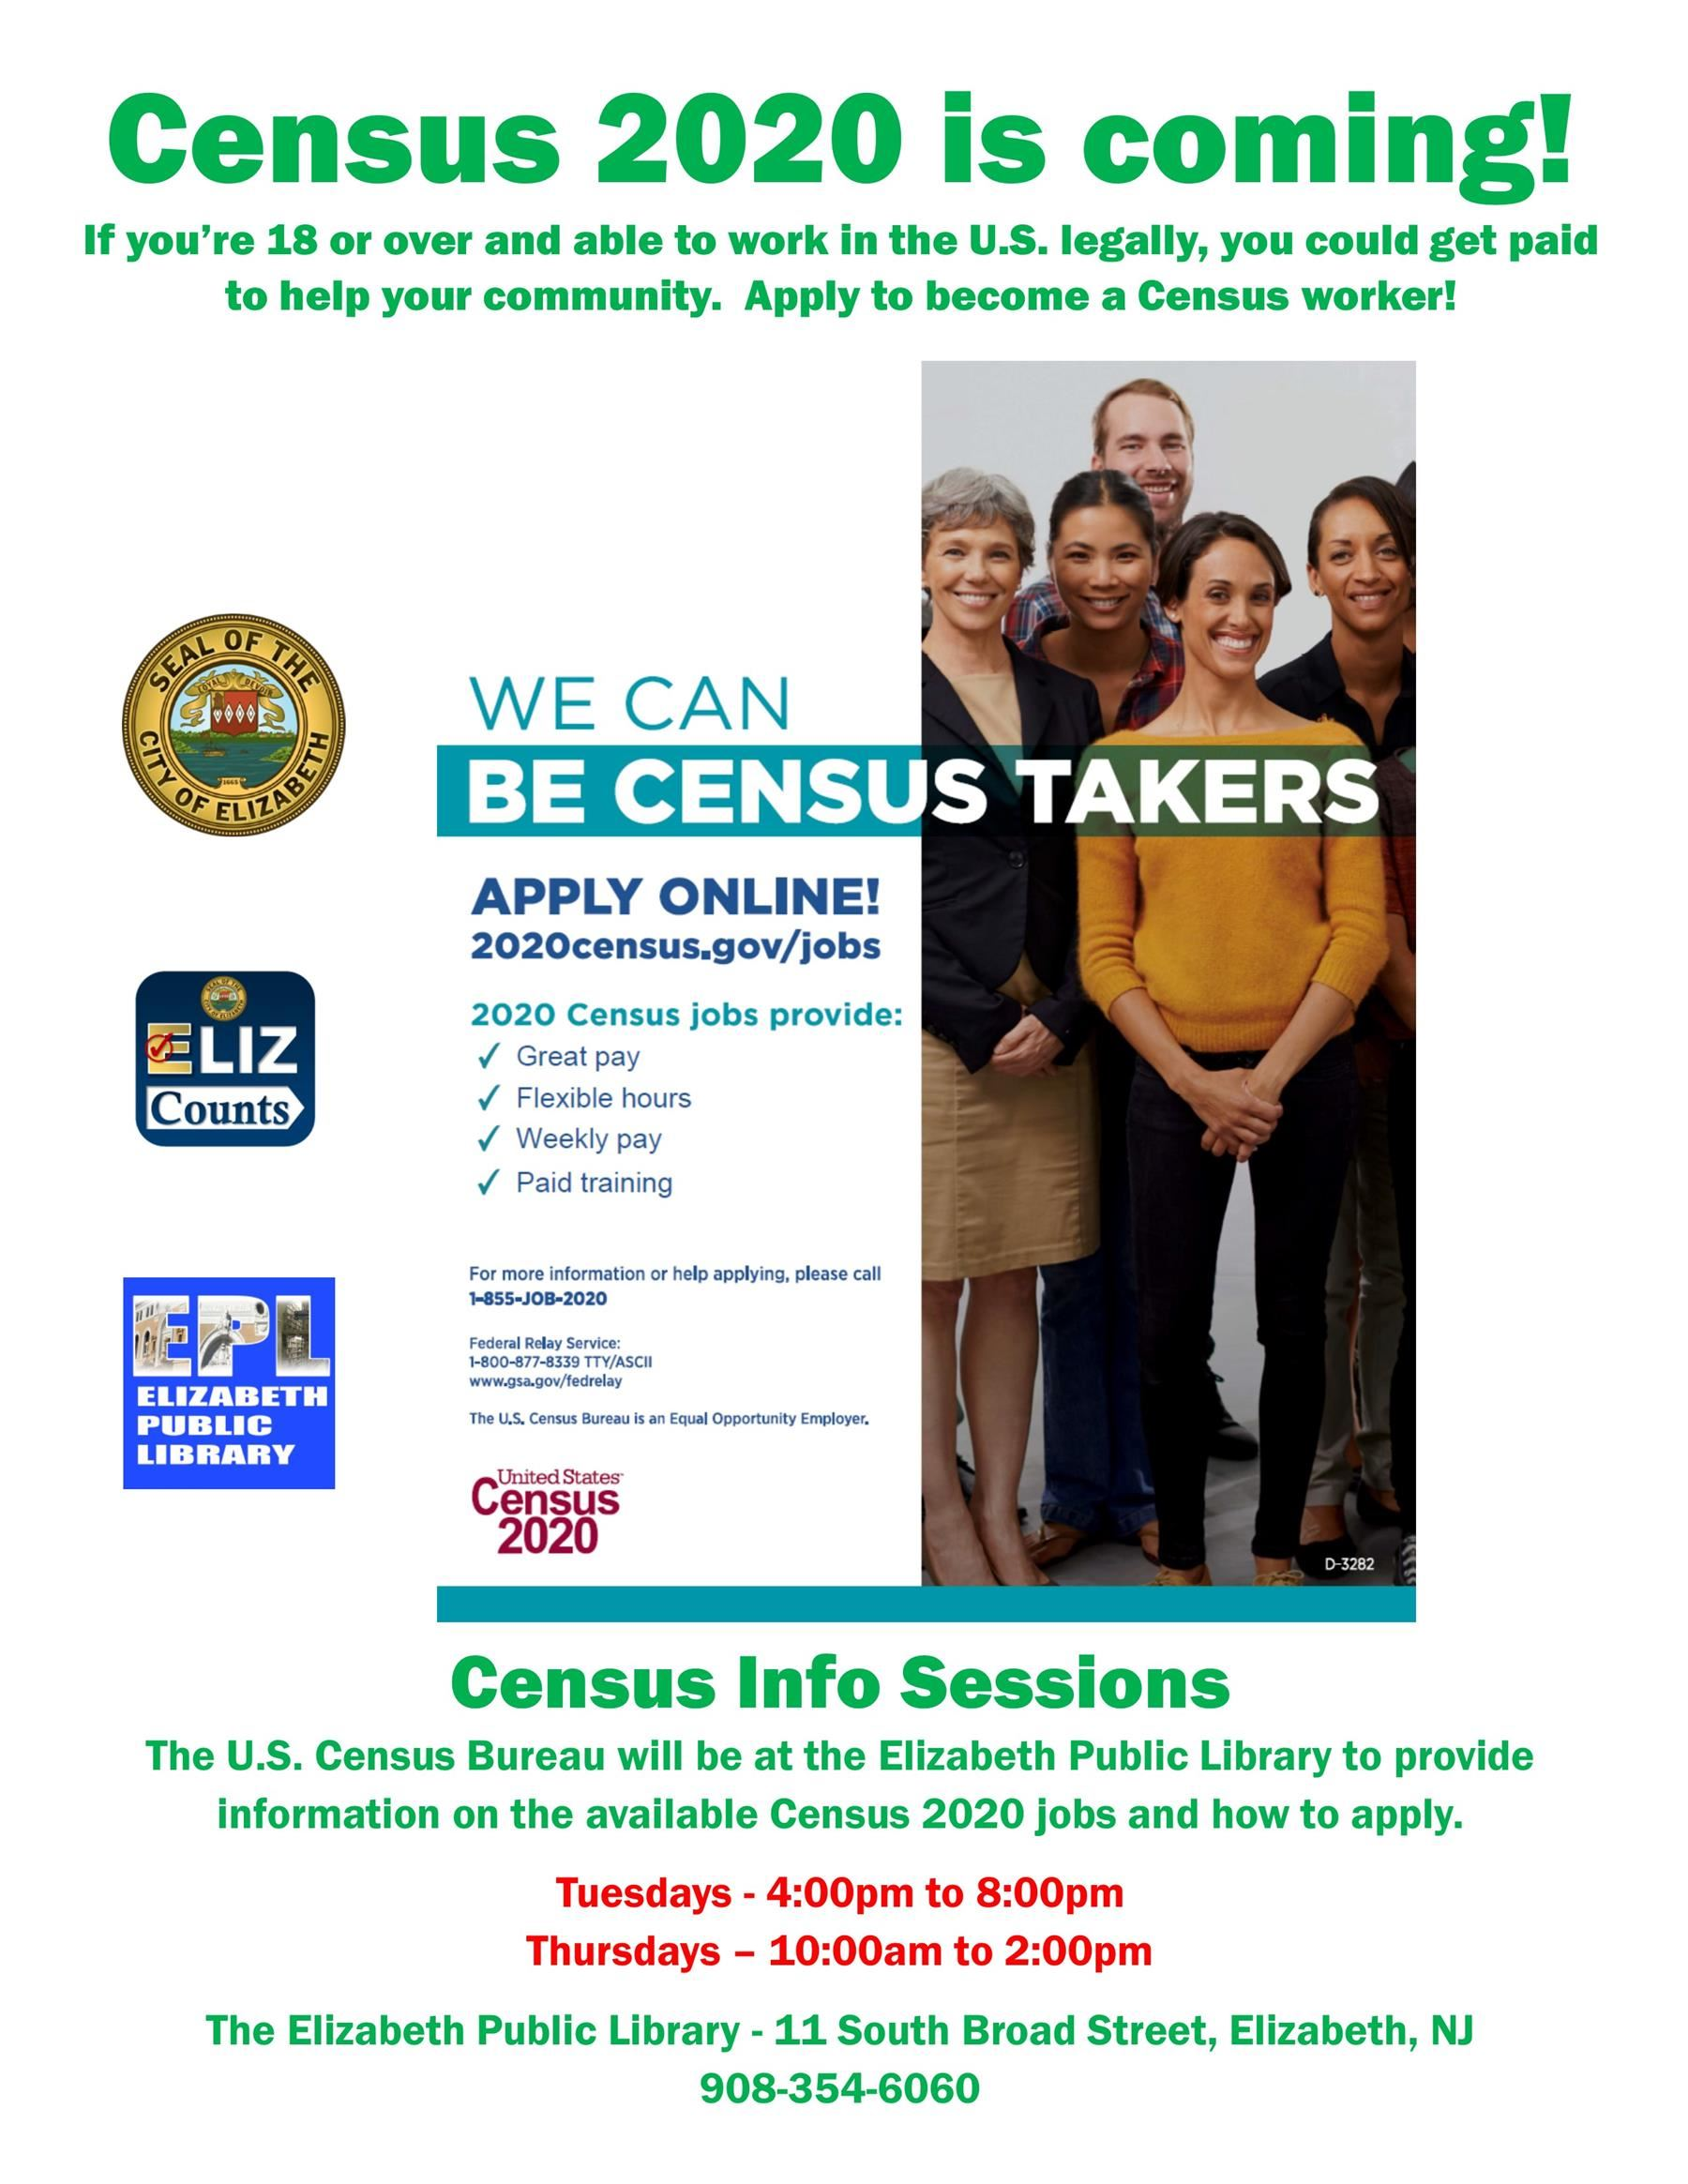 Census Worker Recruitment Events at the Elizabeth Public Library